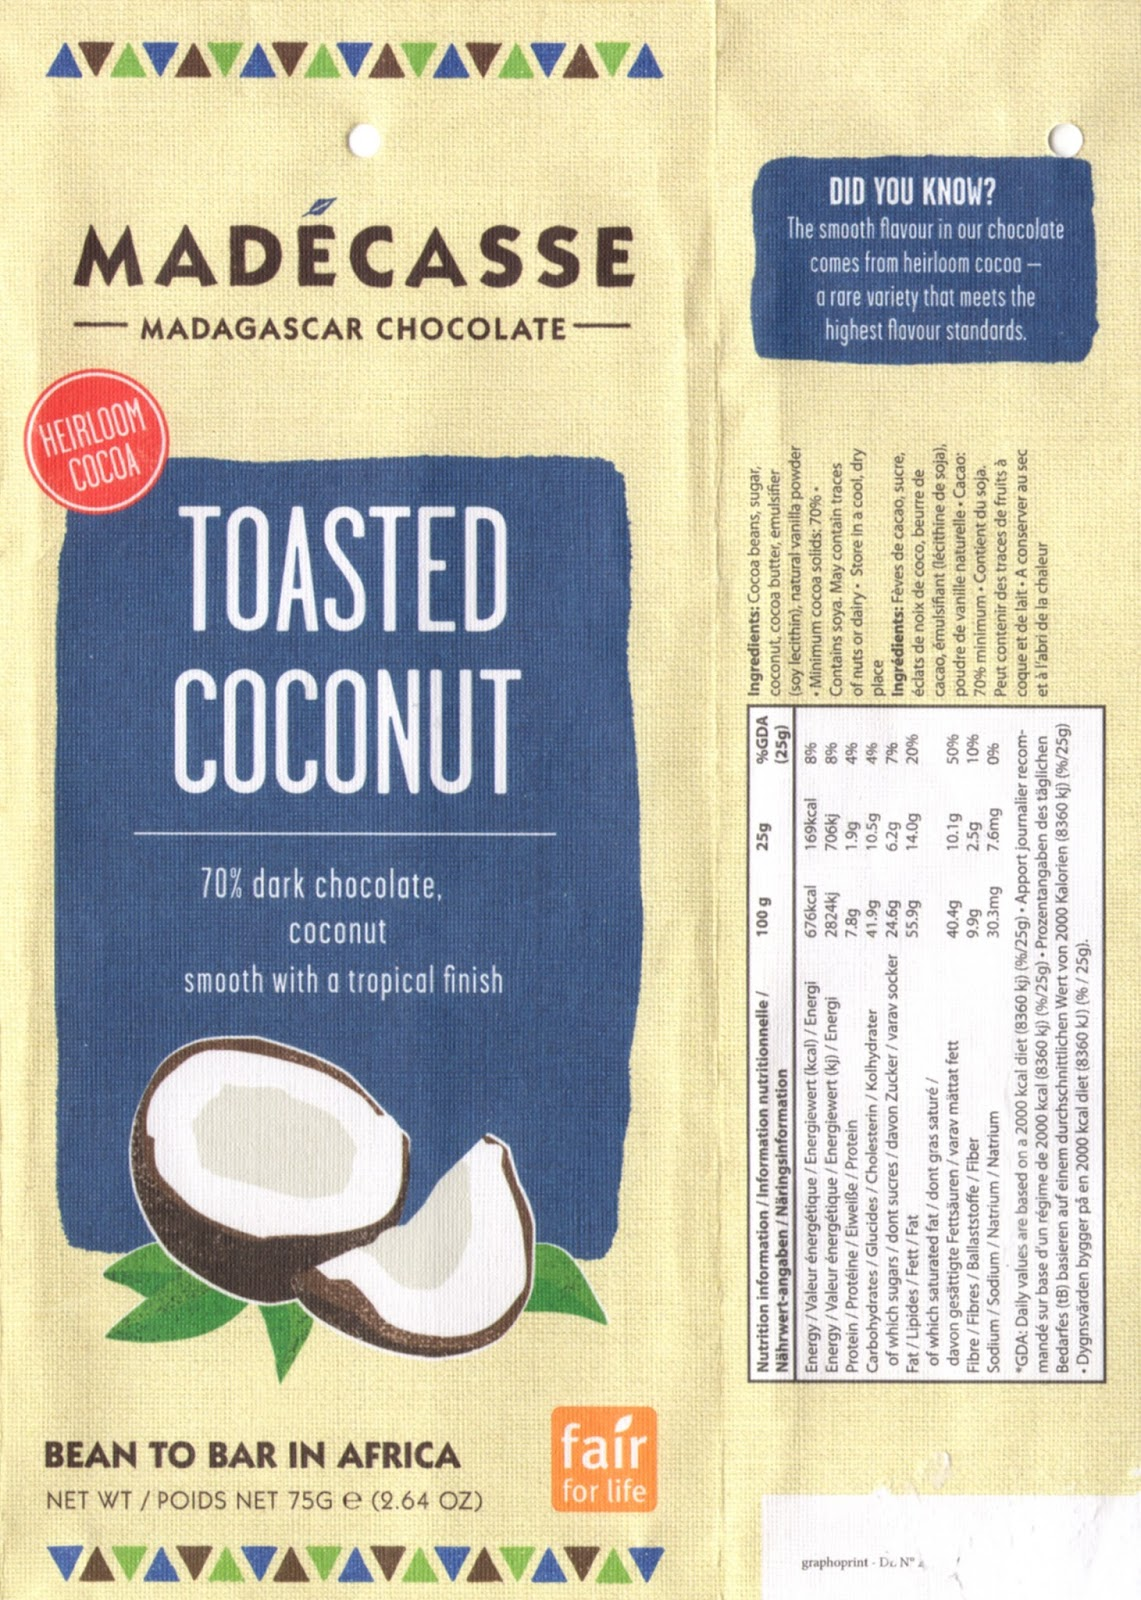 tablette de chocolat noir gourmand madécasse toasted coconut dark 70